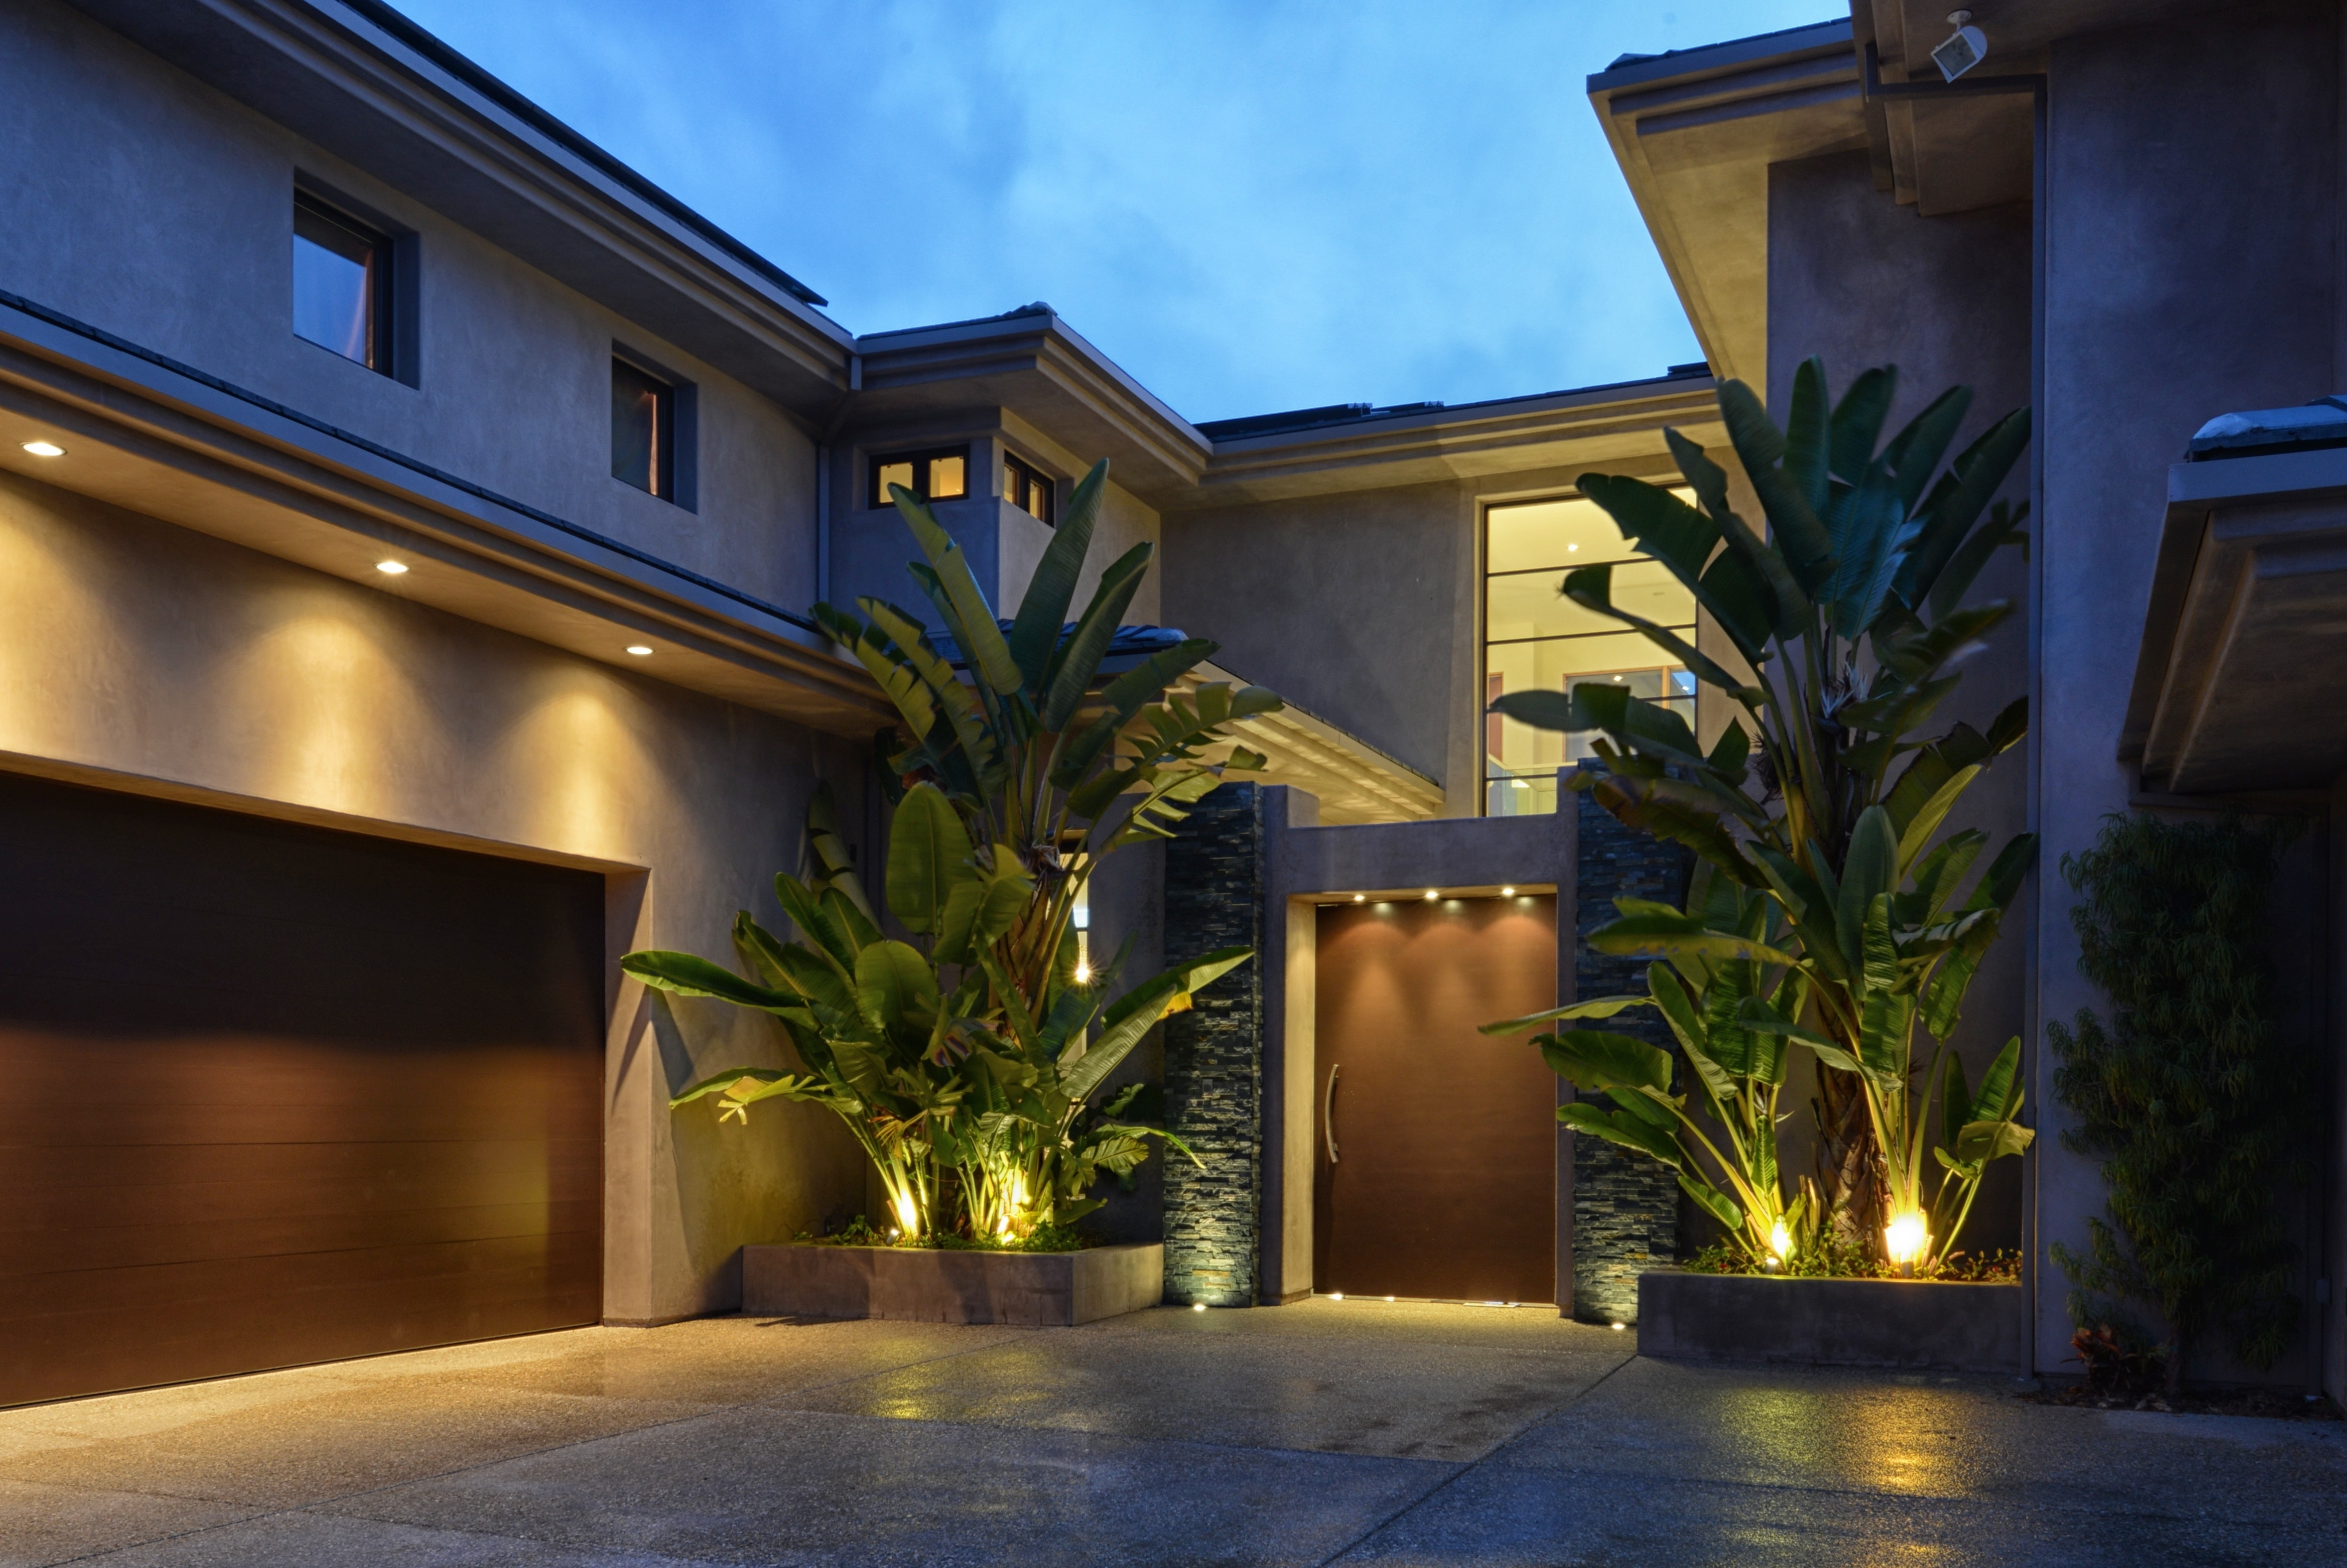 Outside Wall Lights For House Within 2018 Outdoor Garage : Outdoor Wall Lights Backyard Lights Landscape (View 14 of 20)